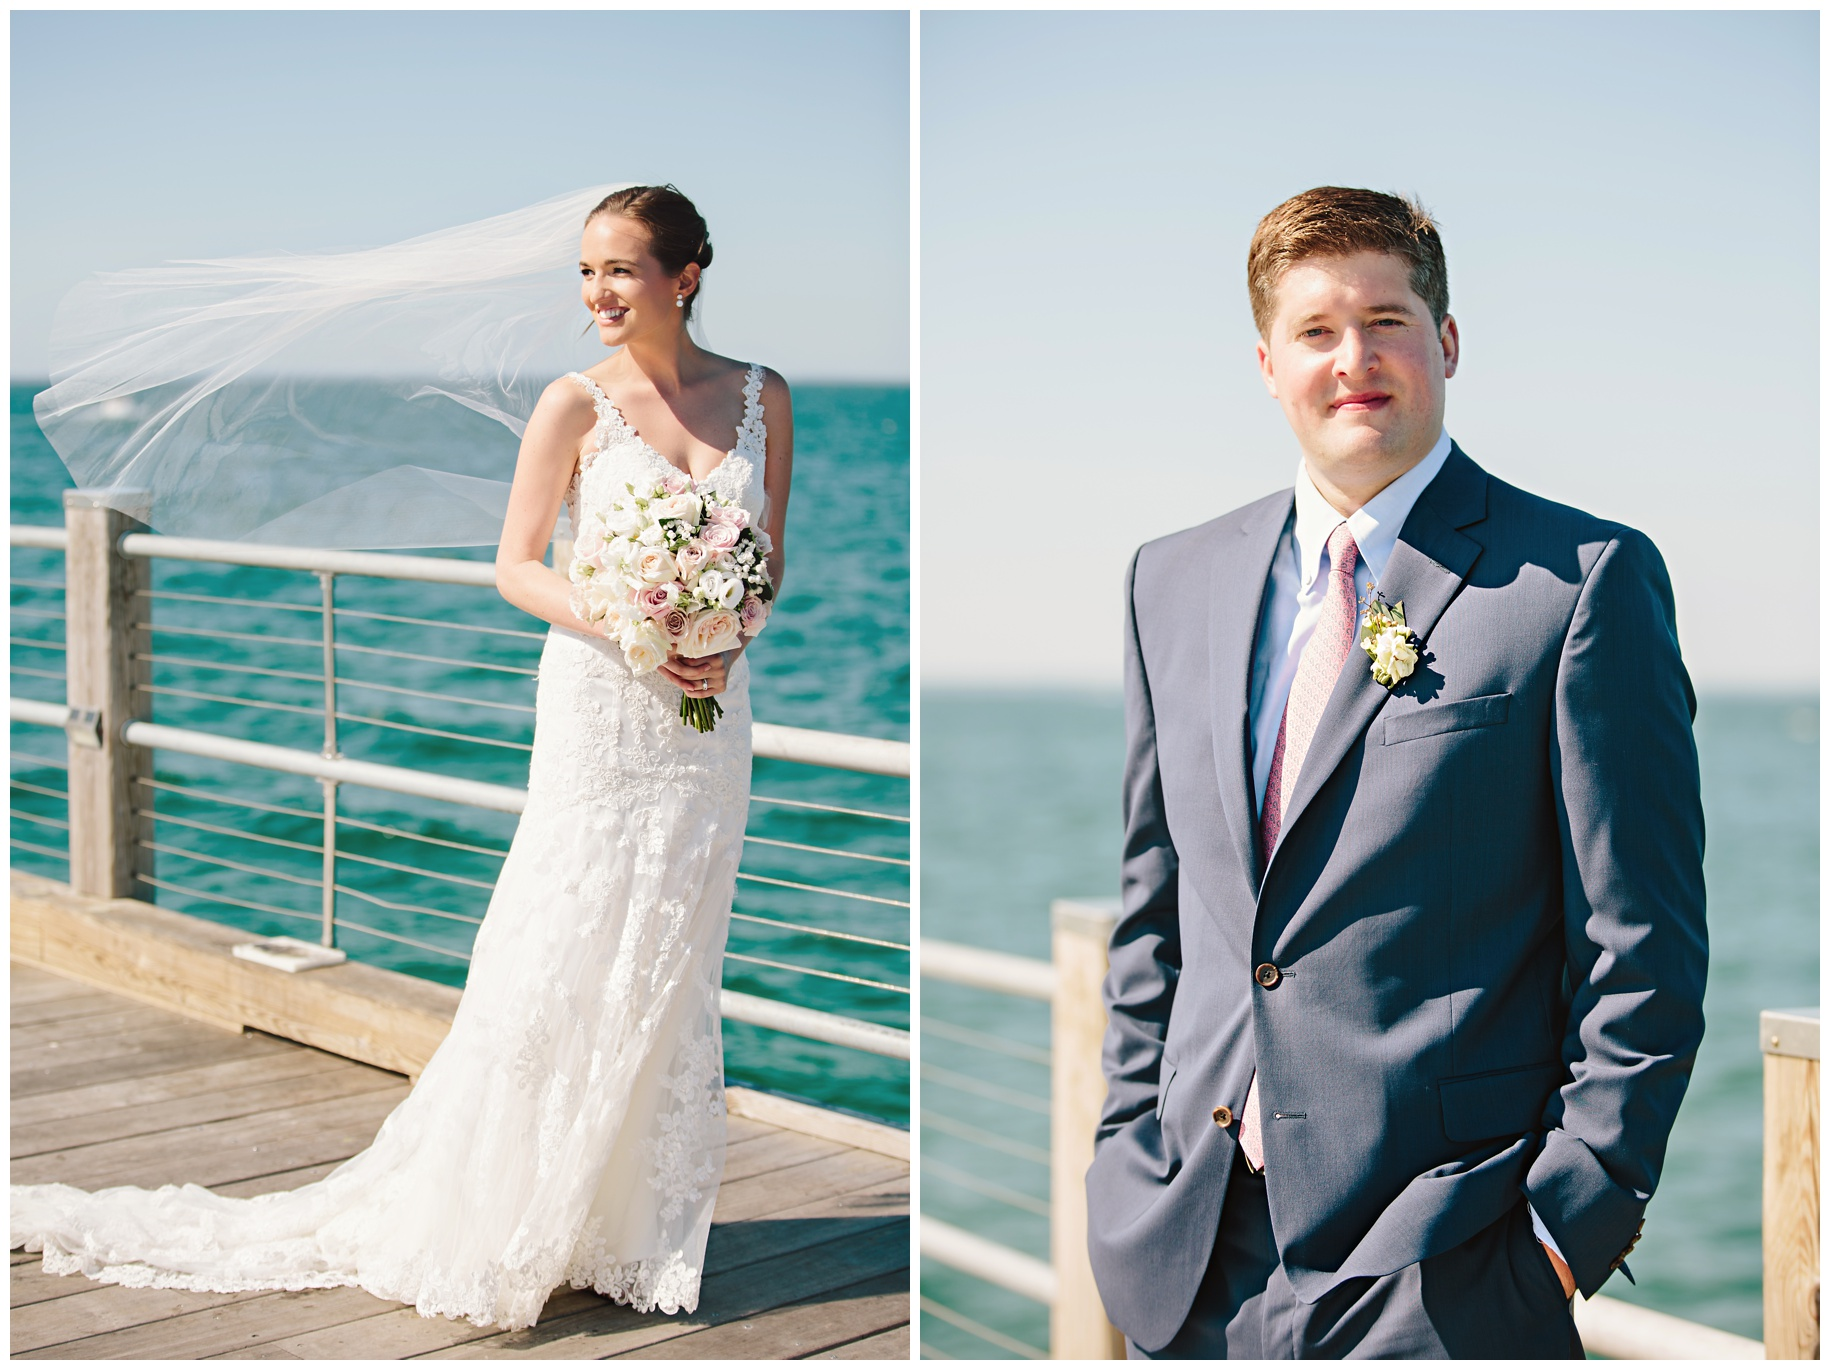 maineweddingphotographer_massachusetts_marthasvineyard_island_newengland-035